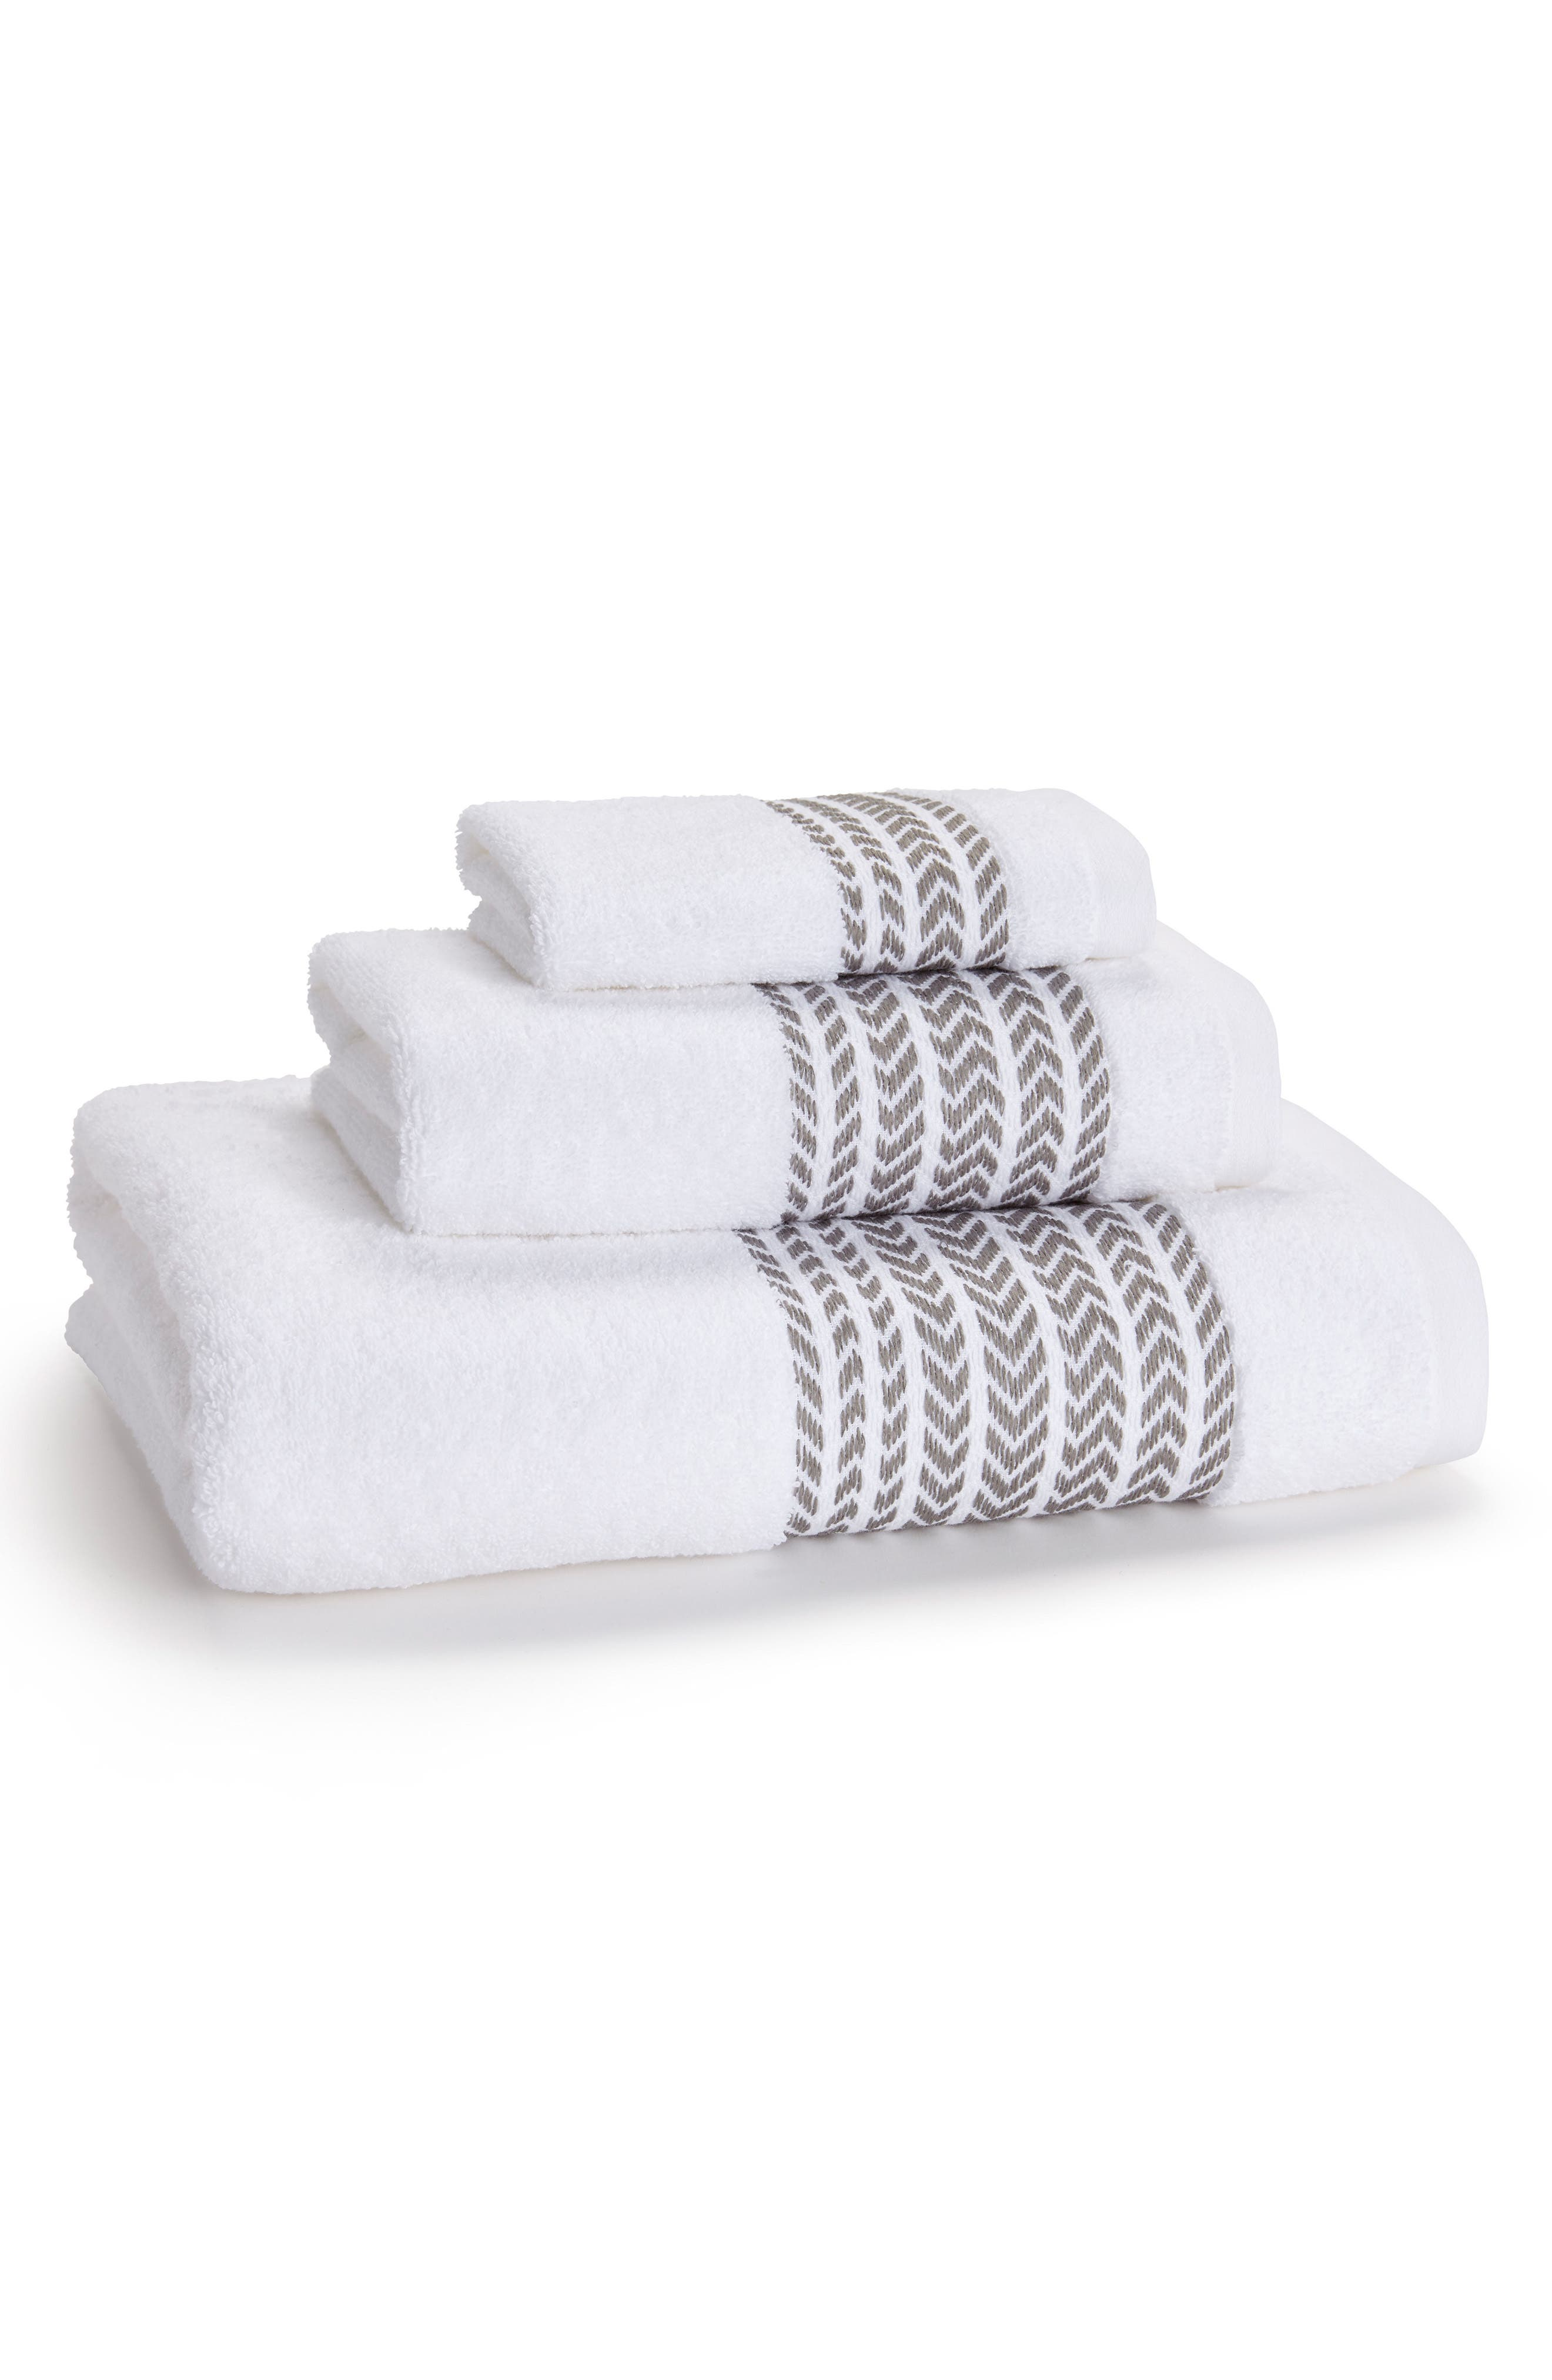 Baja Hand Towel,                             Main thumbnail 1, color,                             020